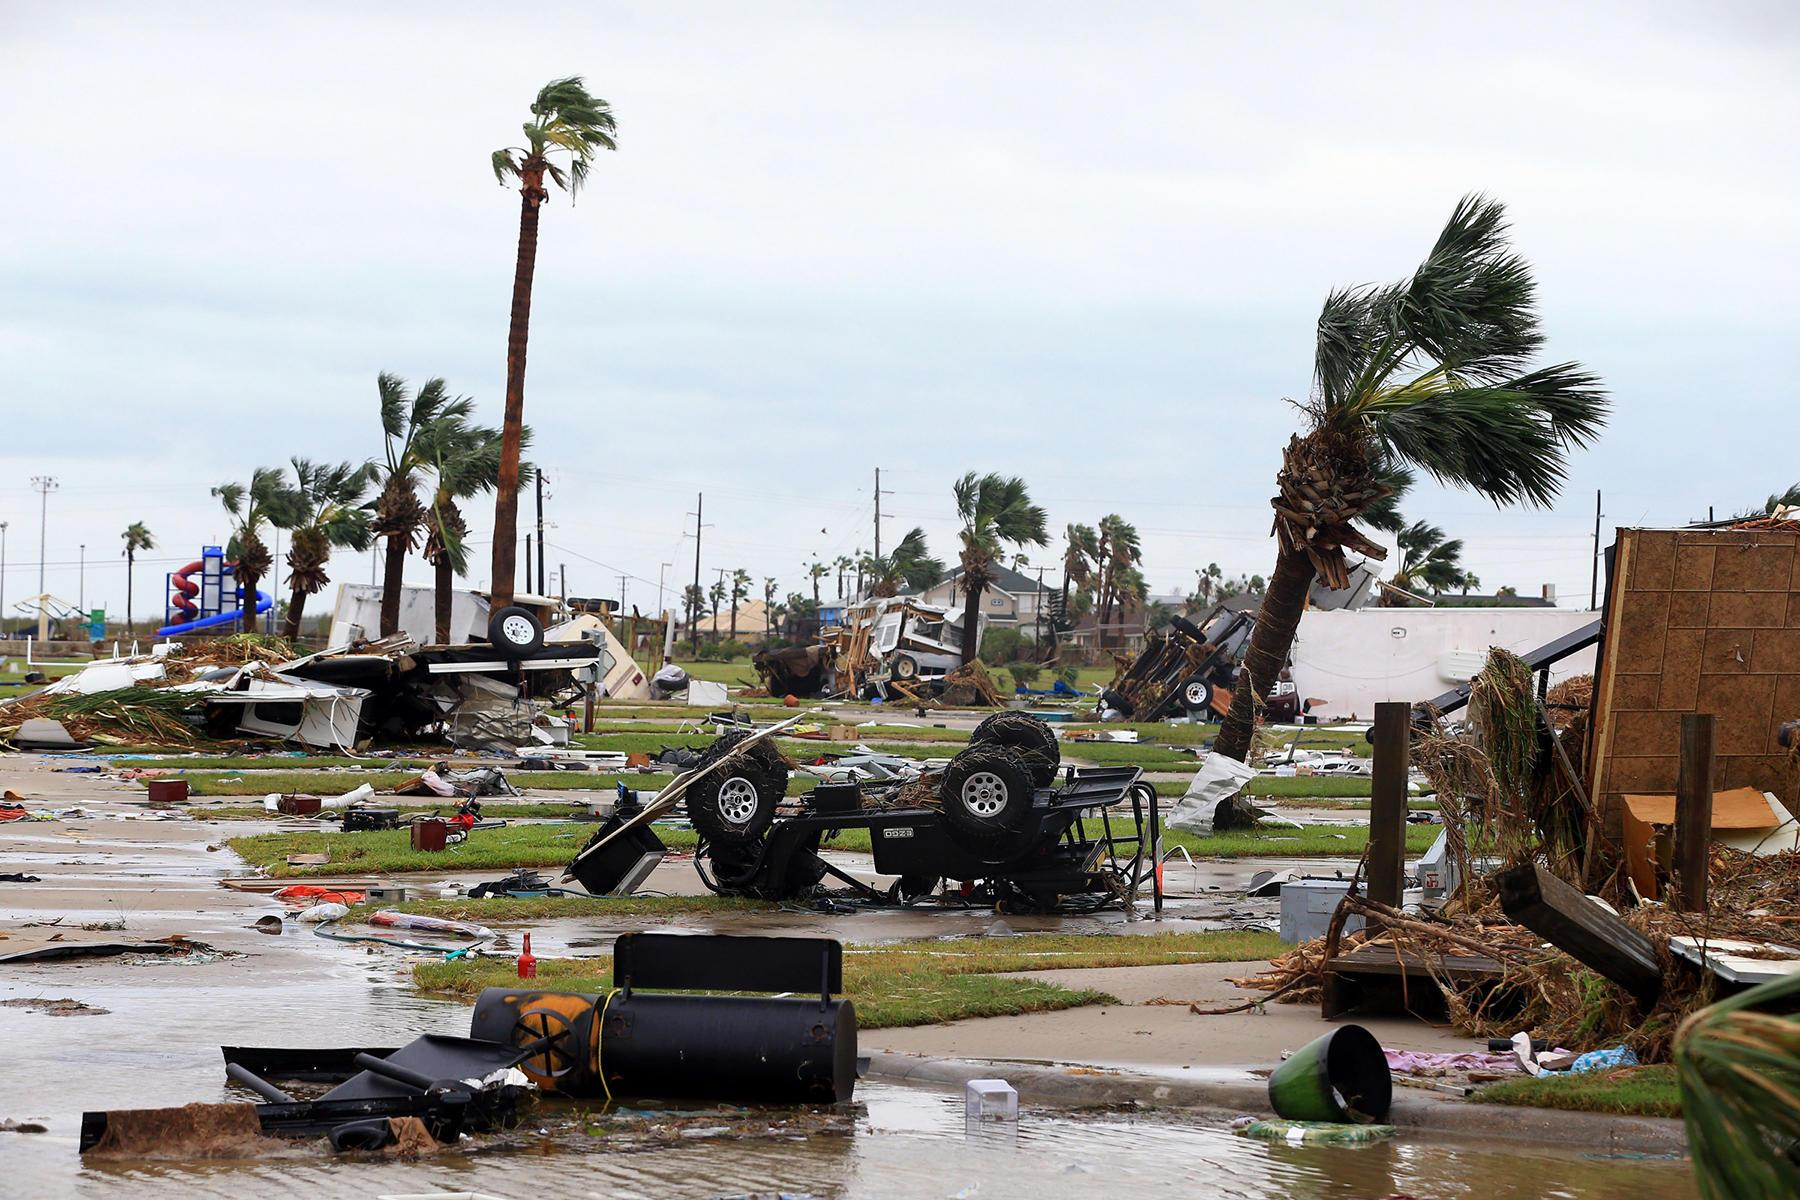 Azerbaijani nationals in US recommended not to visit regions suffering from hurricane Harvey